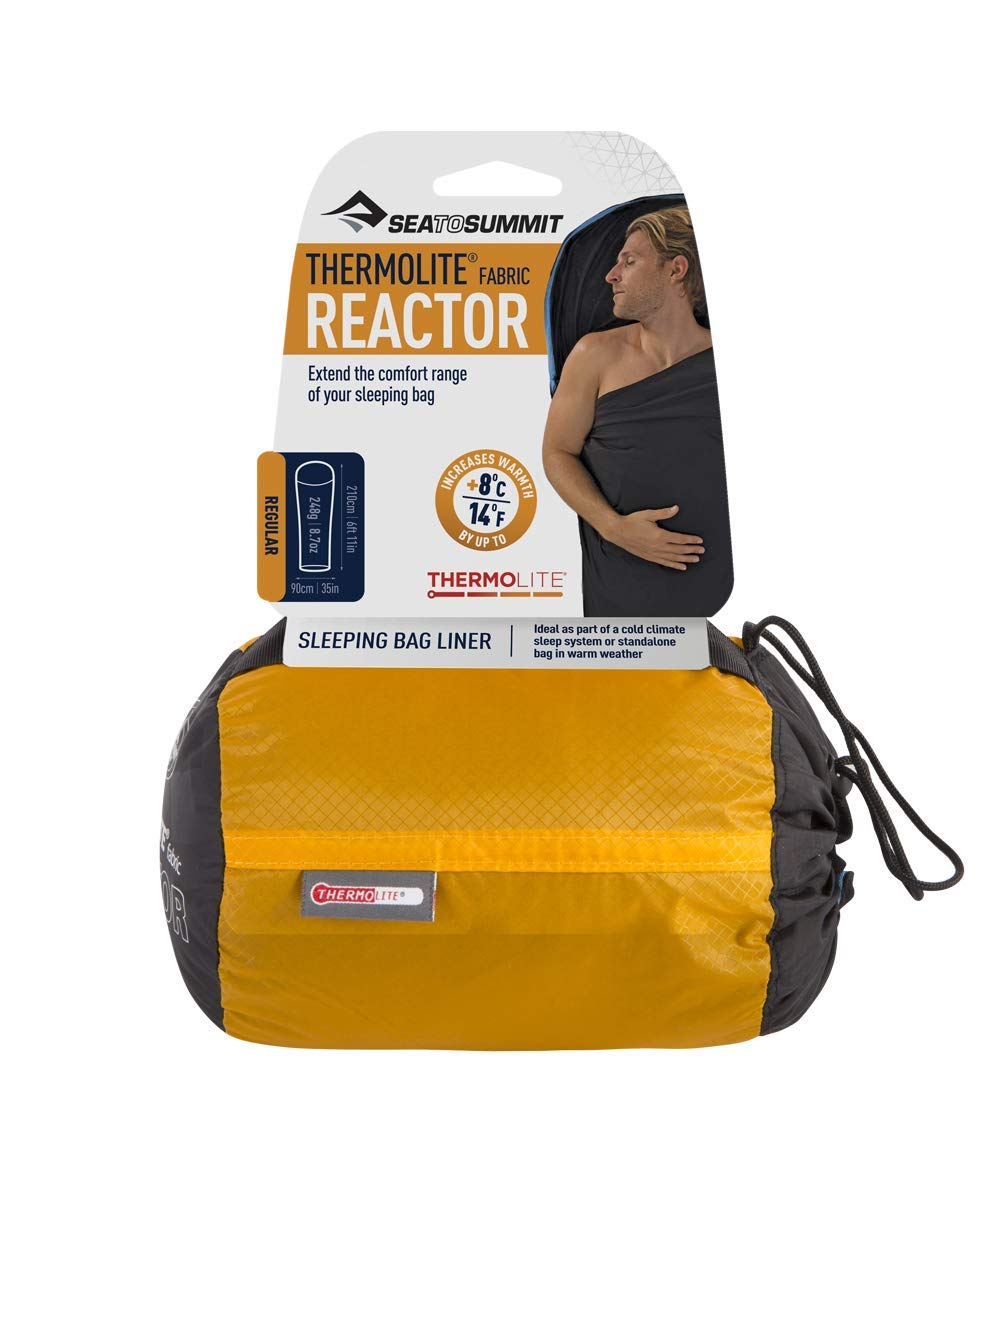 f55441c86 Sea to Summit Sleeping Bag Liner AREACTOR Reactor Thermolite: Amazon.co.uk:  Sports & Outdoors